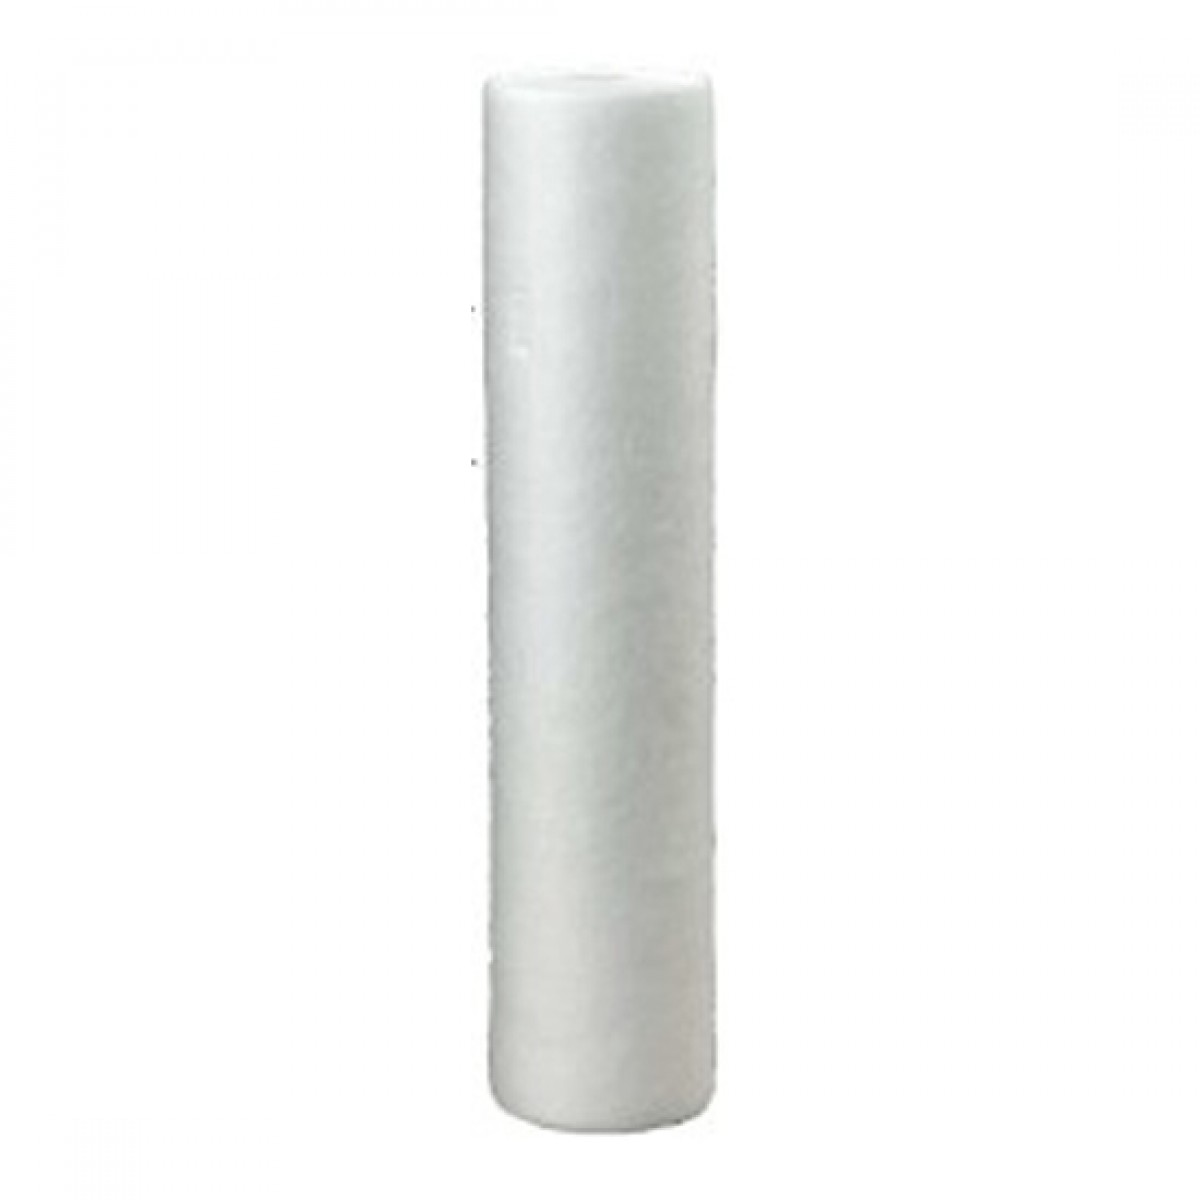 Hydronix Sdc 45 2050 Whole House Sediment Filter Cartridge